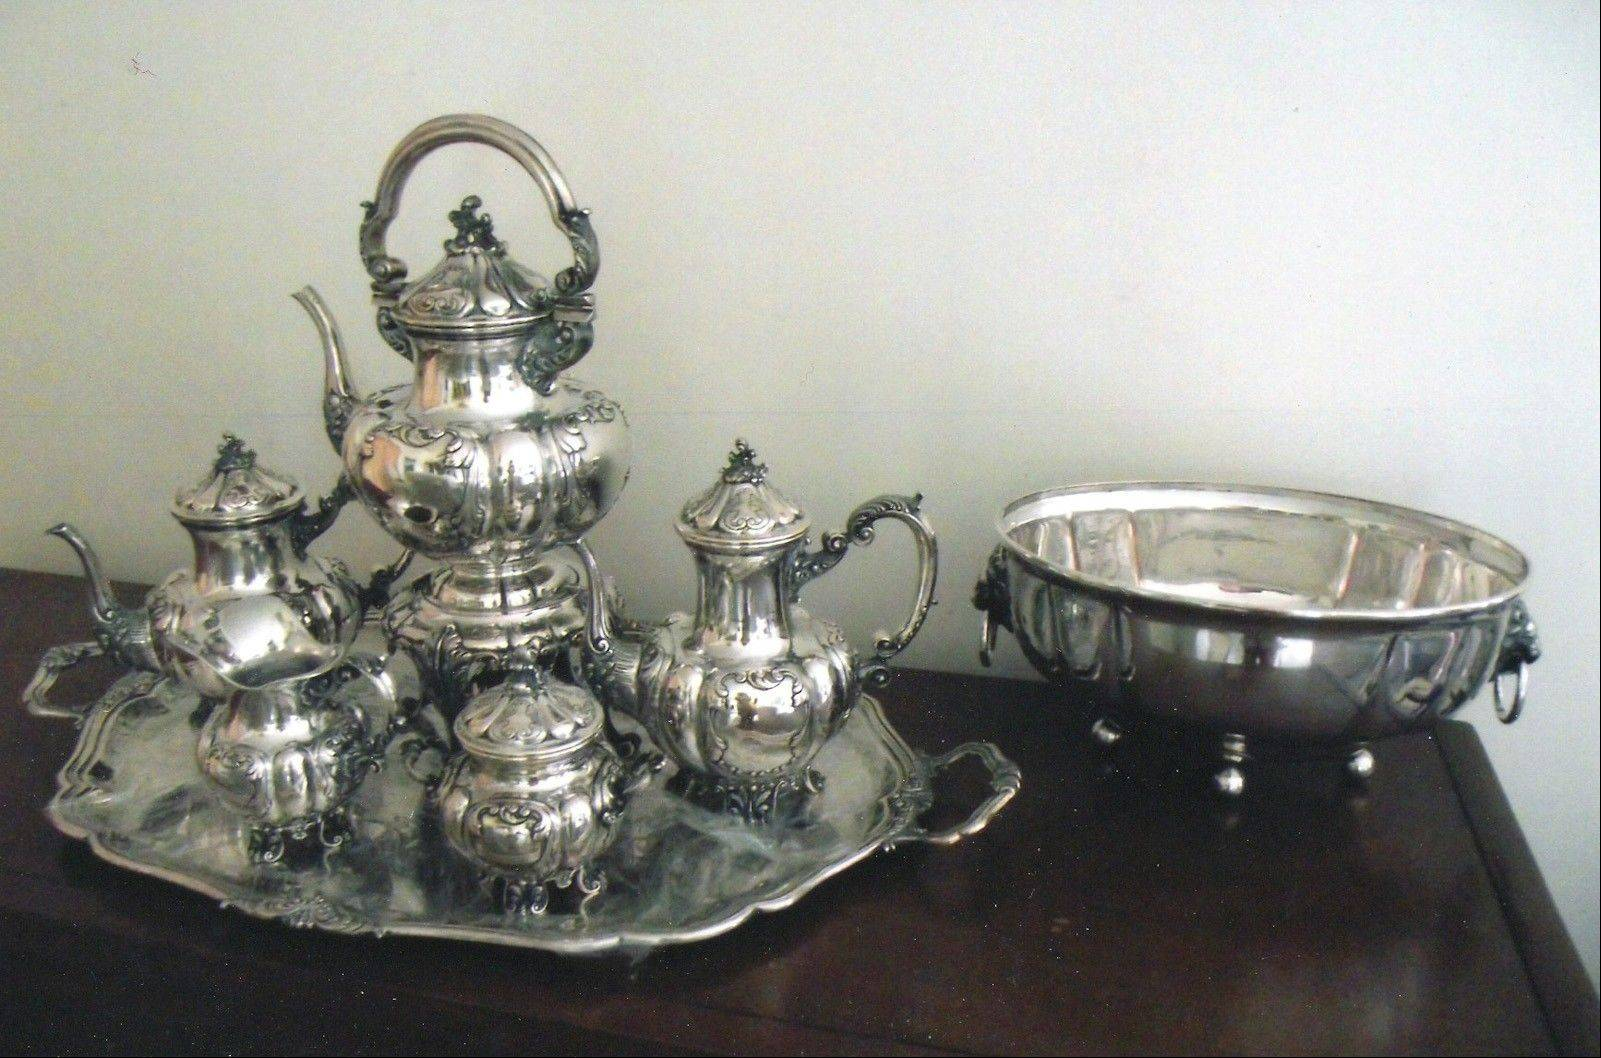 This service is solid silver, not plated, but is it sterling?